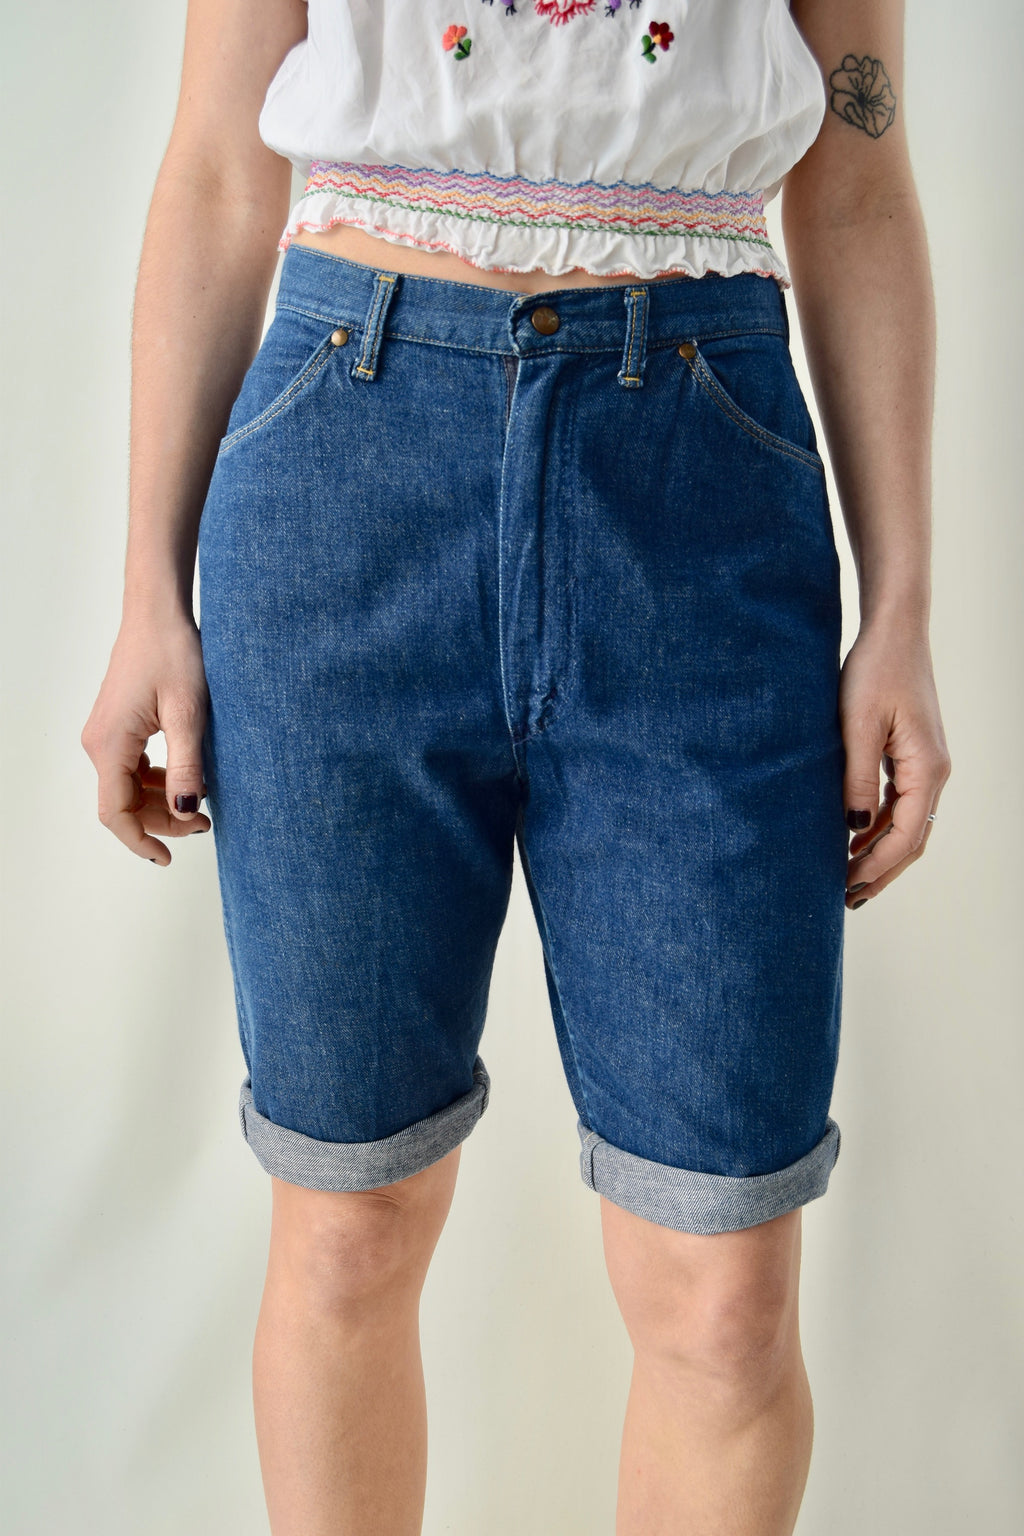 Vintage Blue Bell Misses Denim Shorts FREE SHIPPING TO THE U.S.